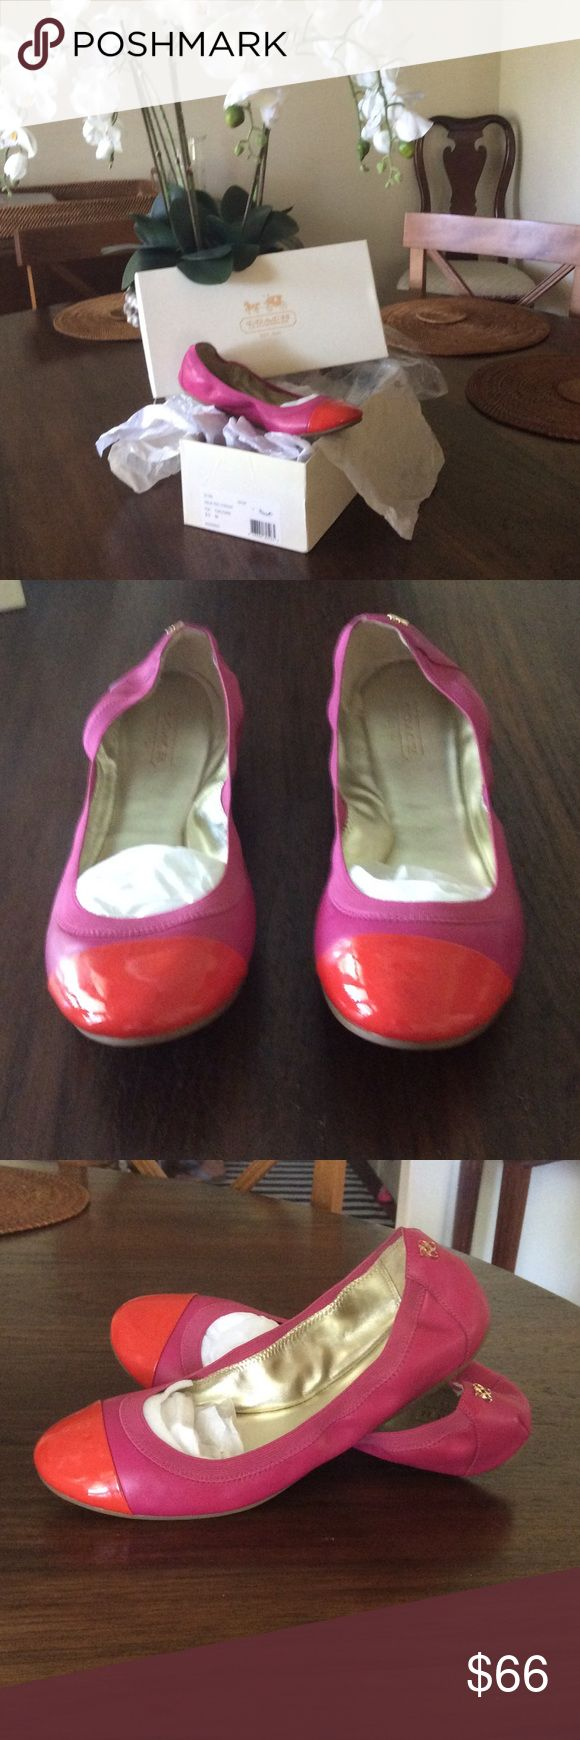 Size 9.5 Pink & Orange Coach Flats Only been worn once for a couple of hours. Will ship with original box. Mint condition. Coach Shoes